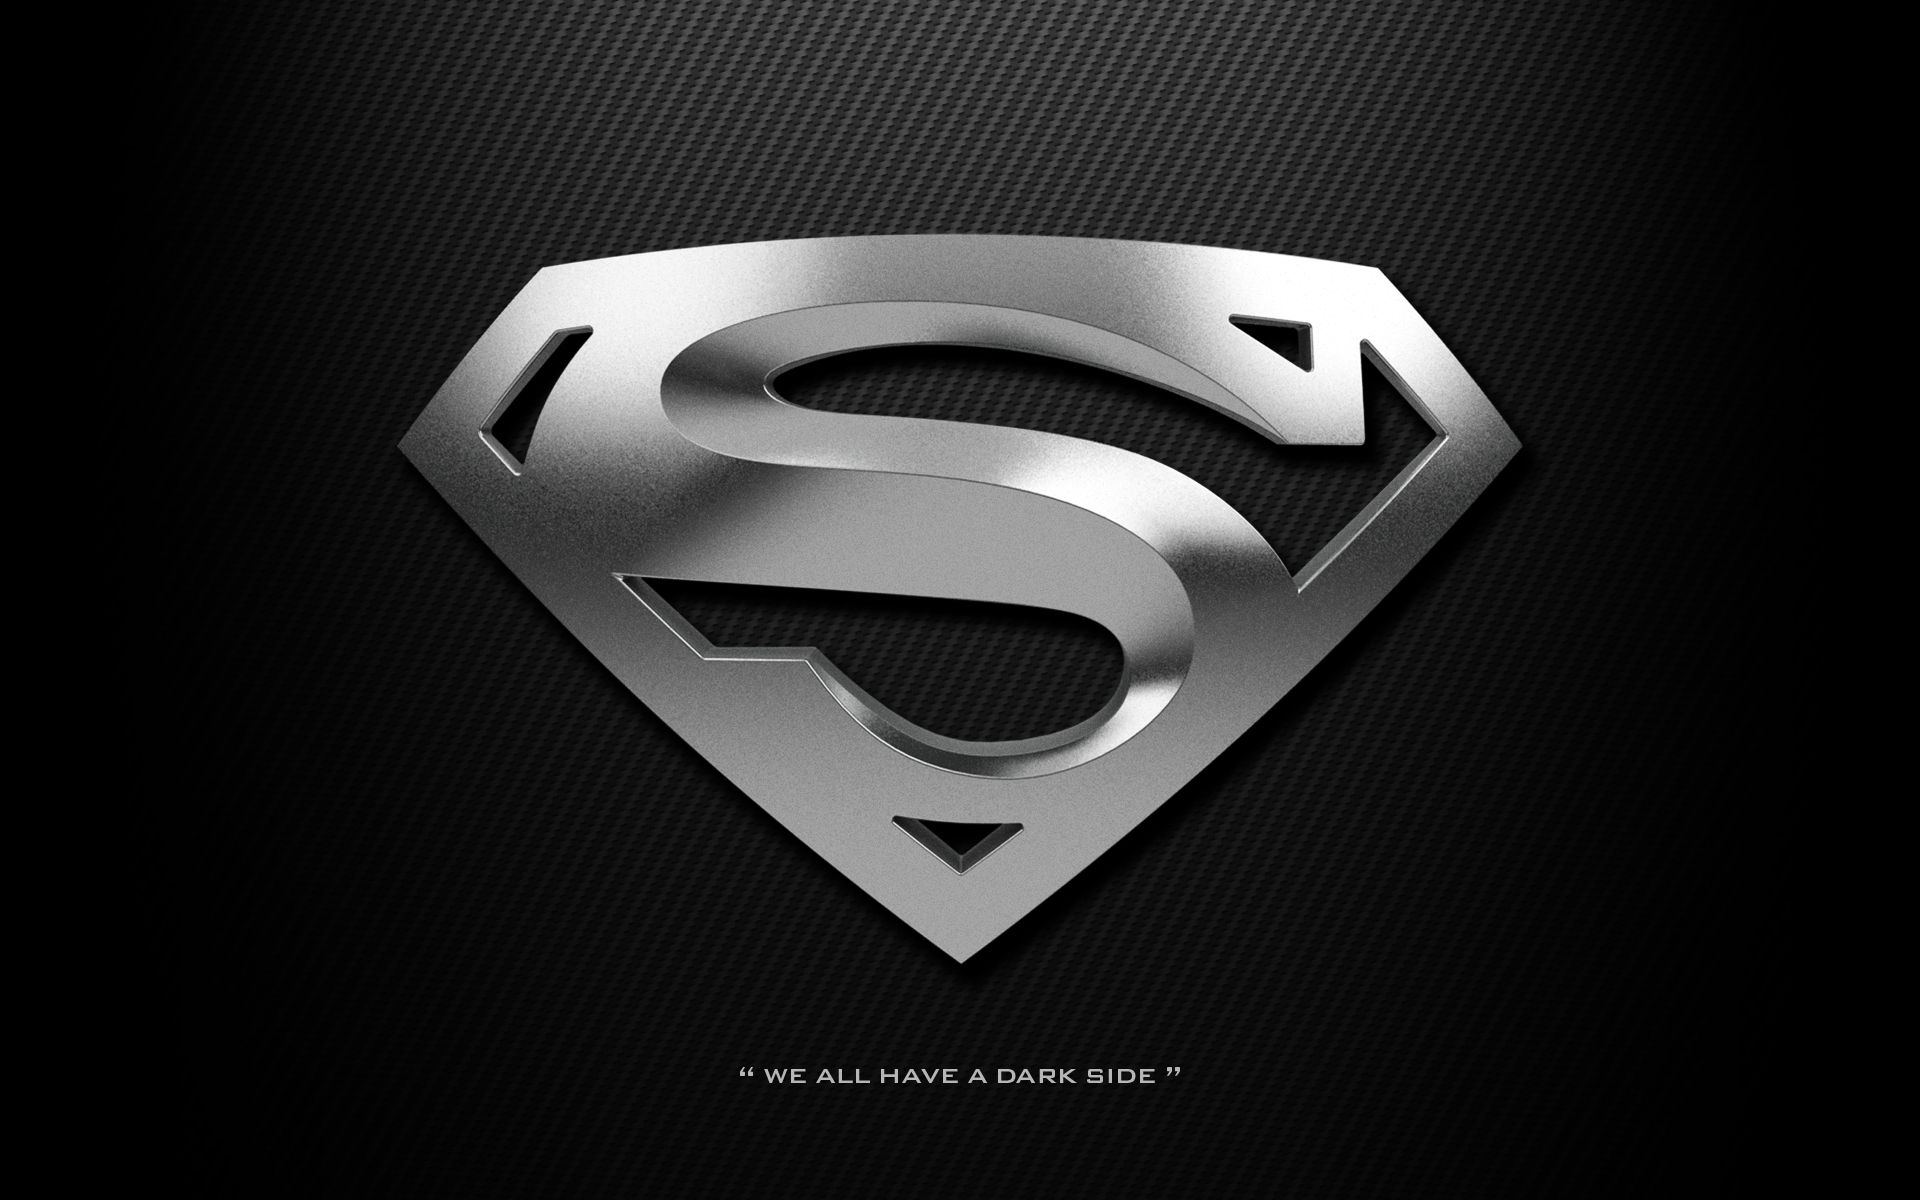 Silver Superman Shield We All Have A Dark Side Superman Wallpaper Logo Superman Logo Superman Wallpaper Dark superman logo hd wallpaper for